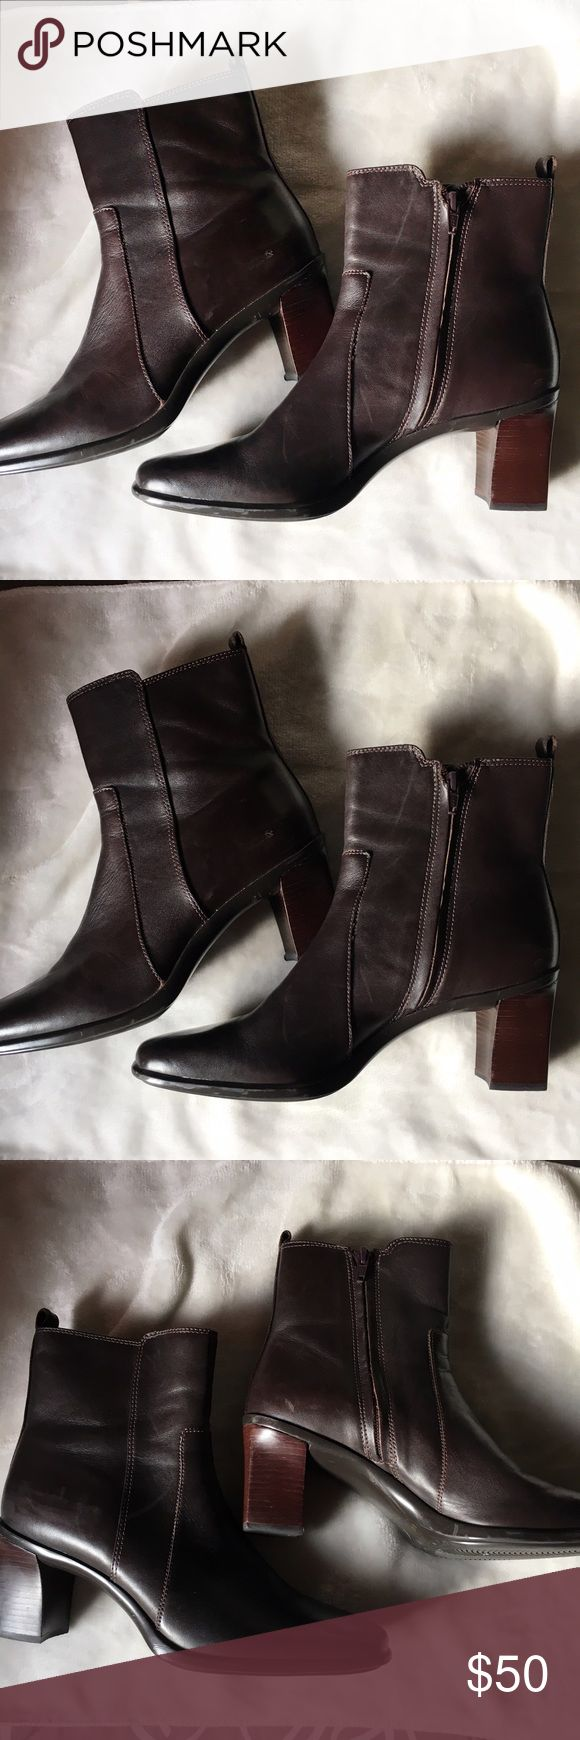 Antonio Melani Dark Brown Leather Ankle Boots Antonio Melani Parlor Dark Brown Leather Ankle Boots in excellent used condition. Almost like new. Check out the soles. Gorgeous boots! 😍😍😍 ANTONIO MELANI Shoes Ankle Boots & Booties